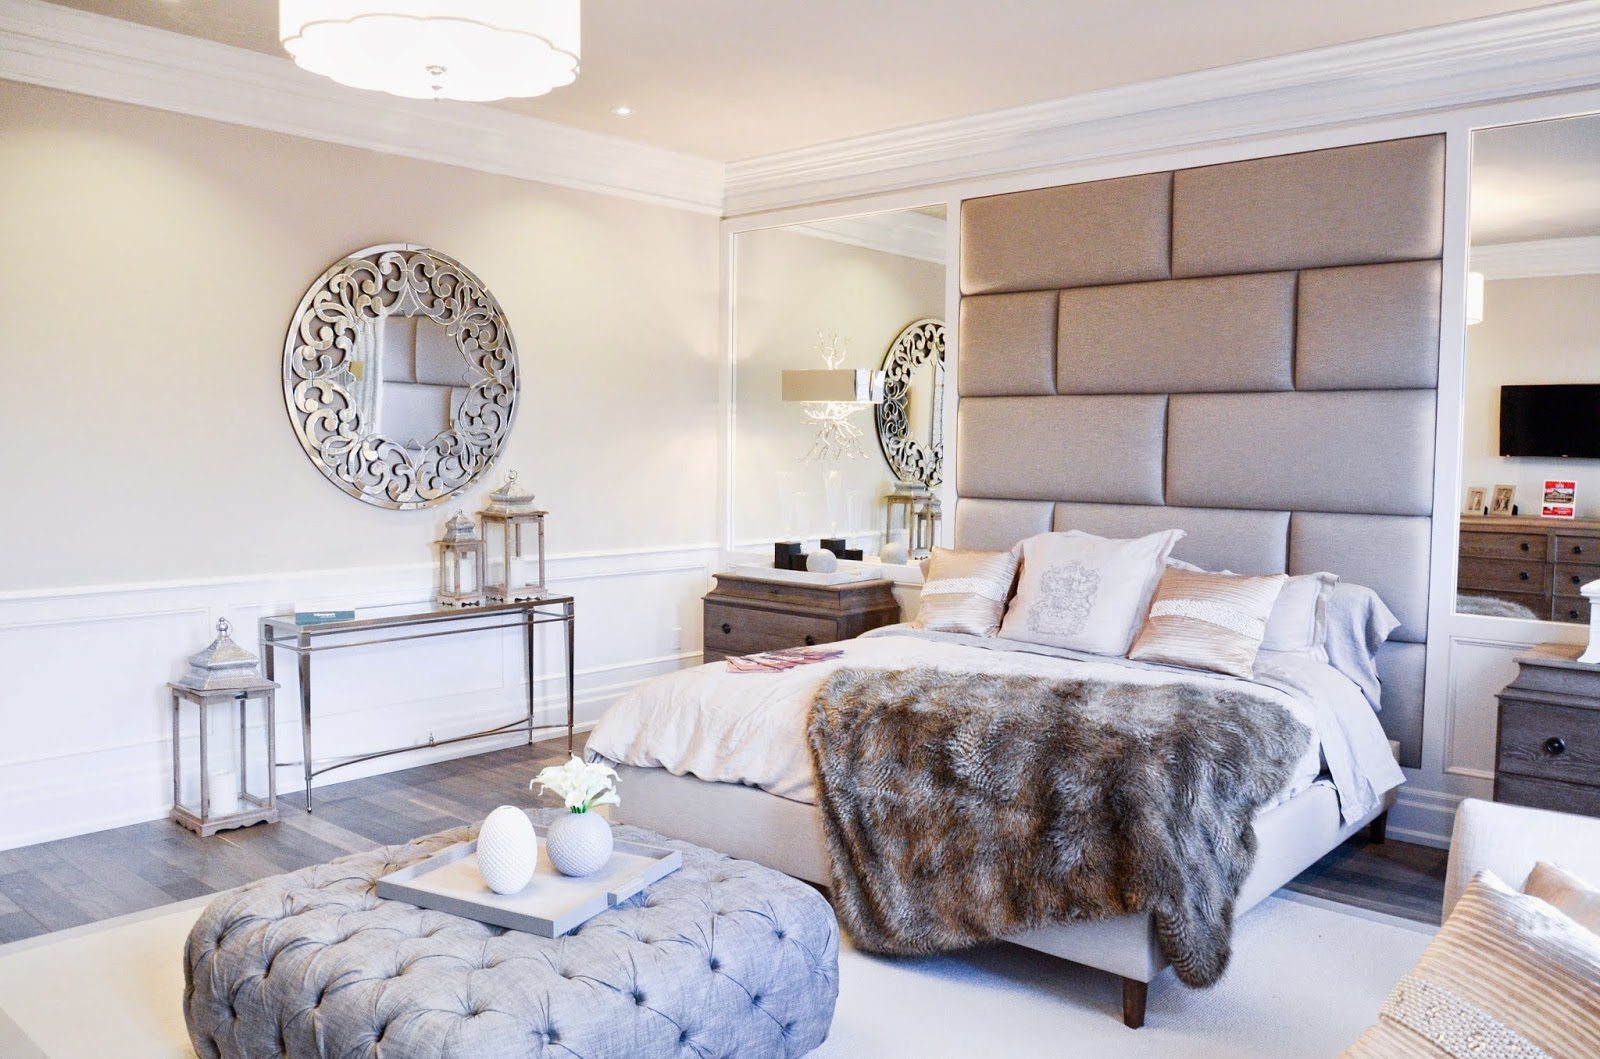 PMLOTTO KLEINBURG SHOWROOM: GLAMOROUS MASTER BEDROOM